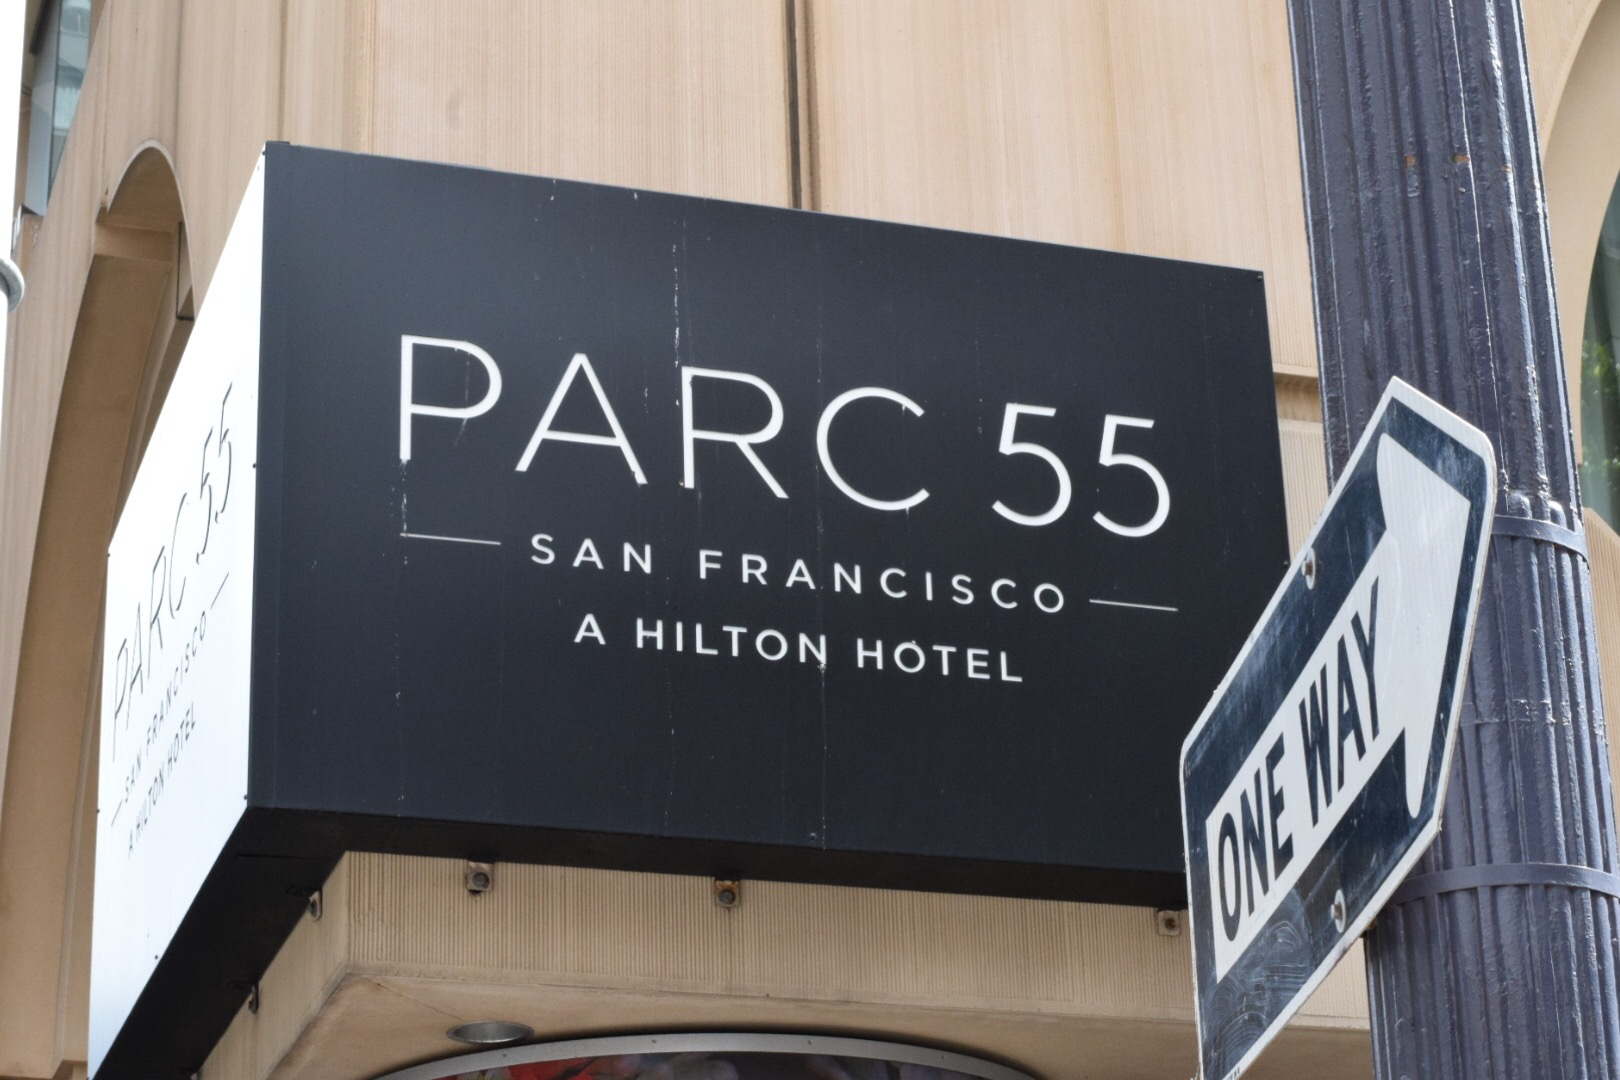 Parc 55 San Francisco Hilton | Photo by Erika Beach